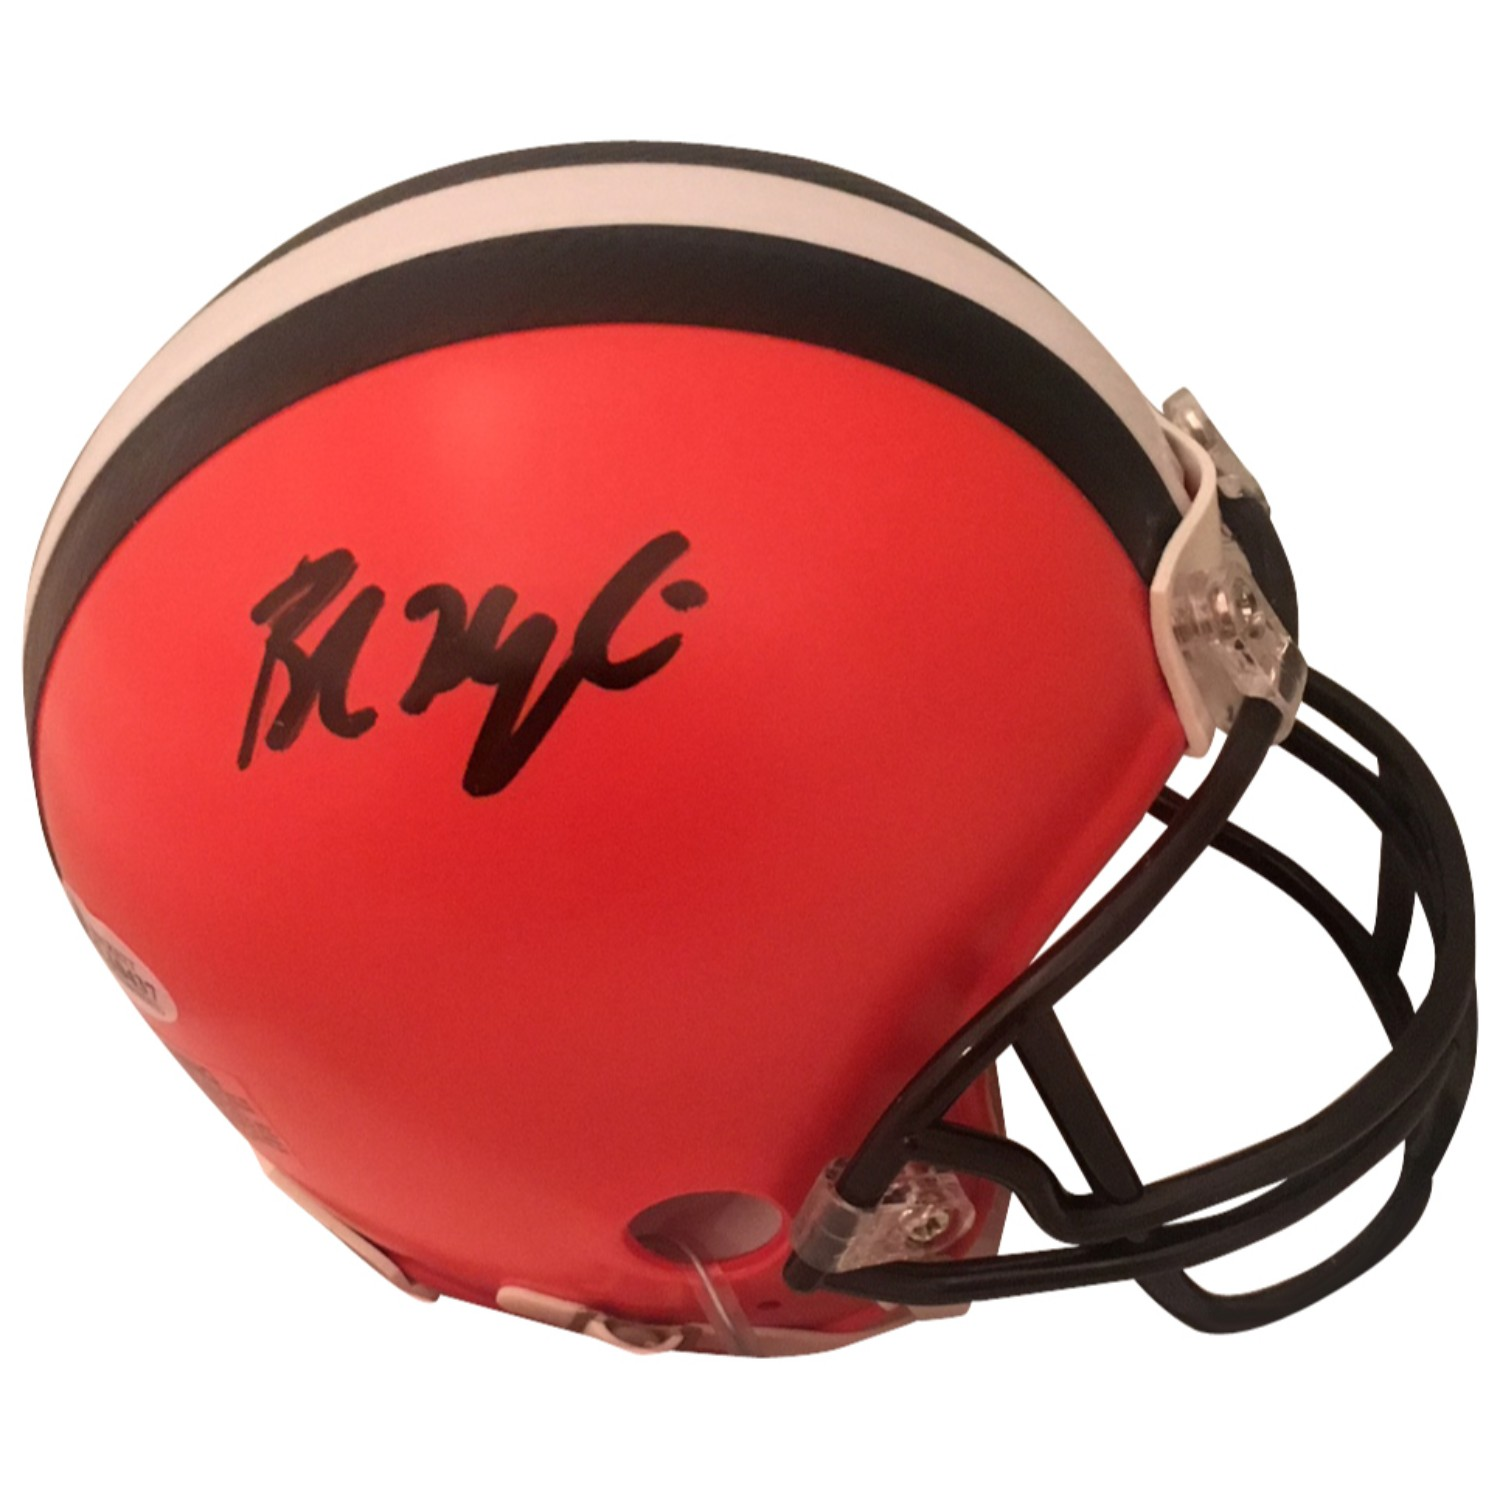 Baker Mayfield Autographed Cleveland Browns Signed Football Mini Helmet Beckett COA